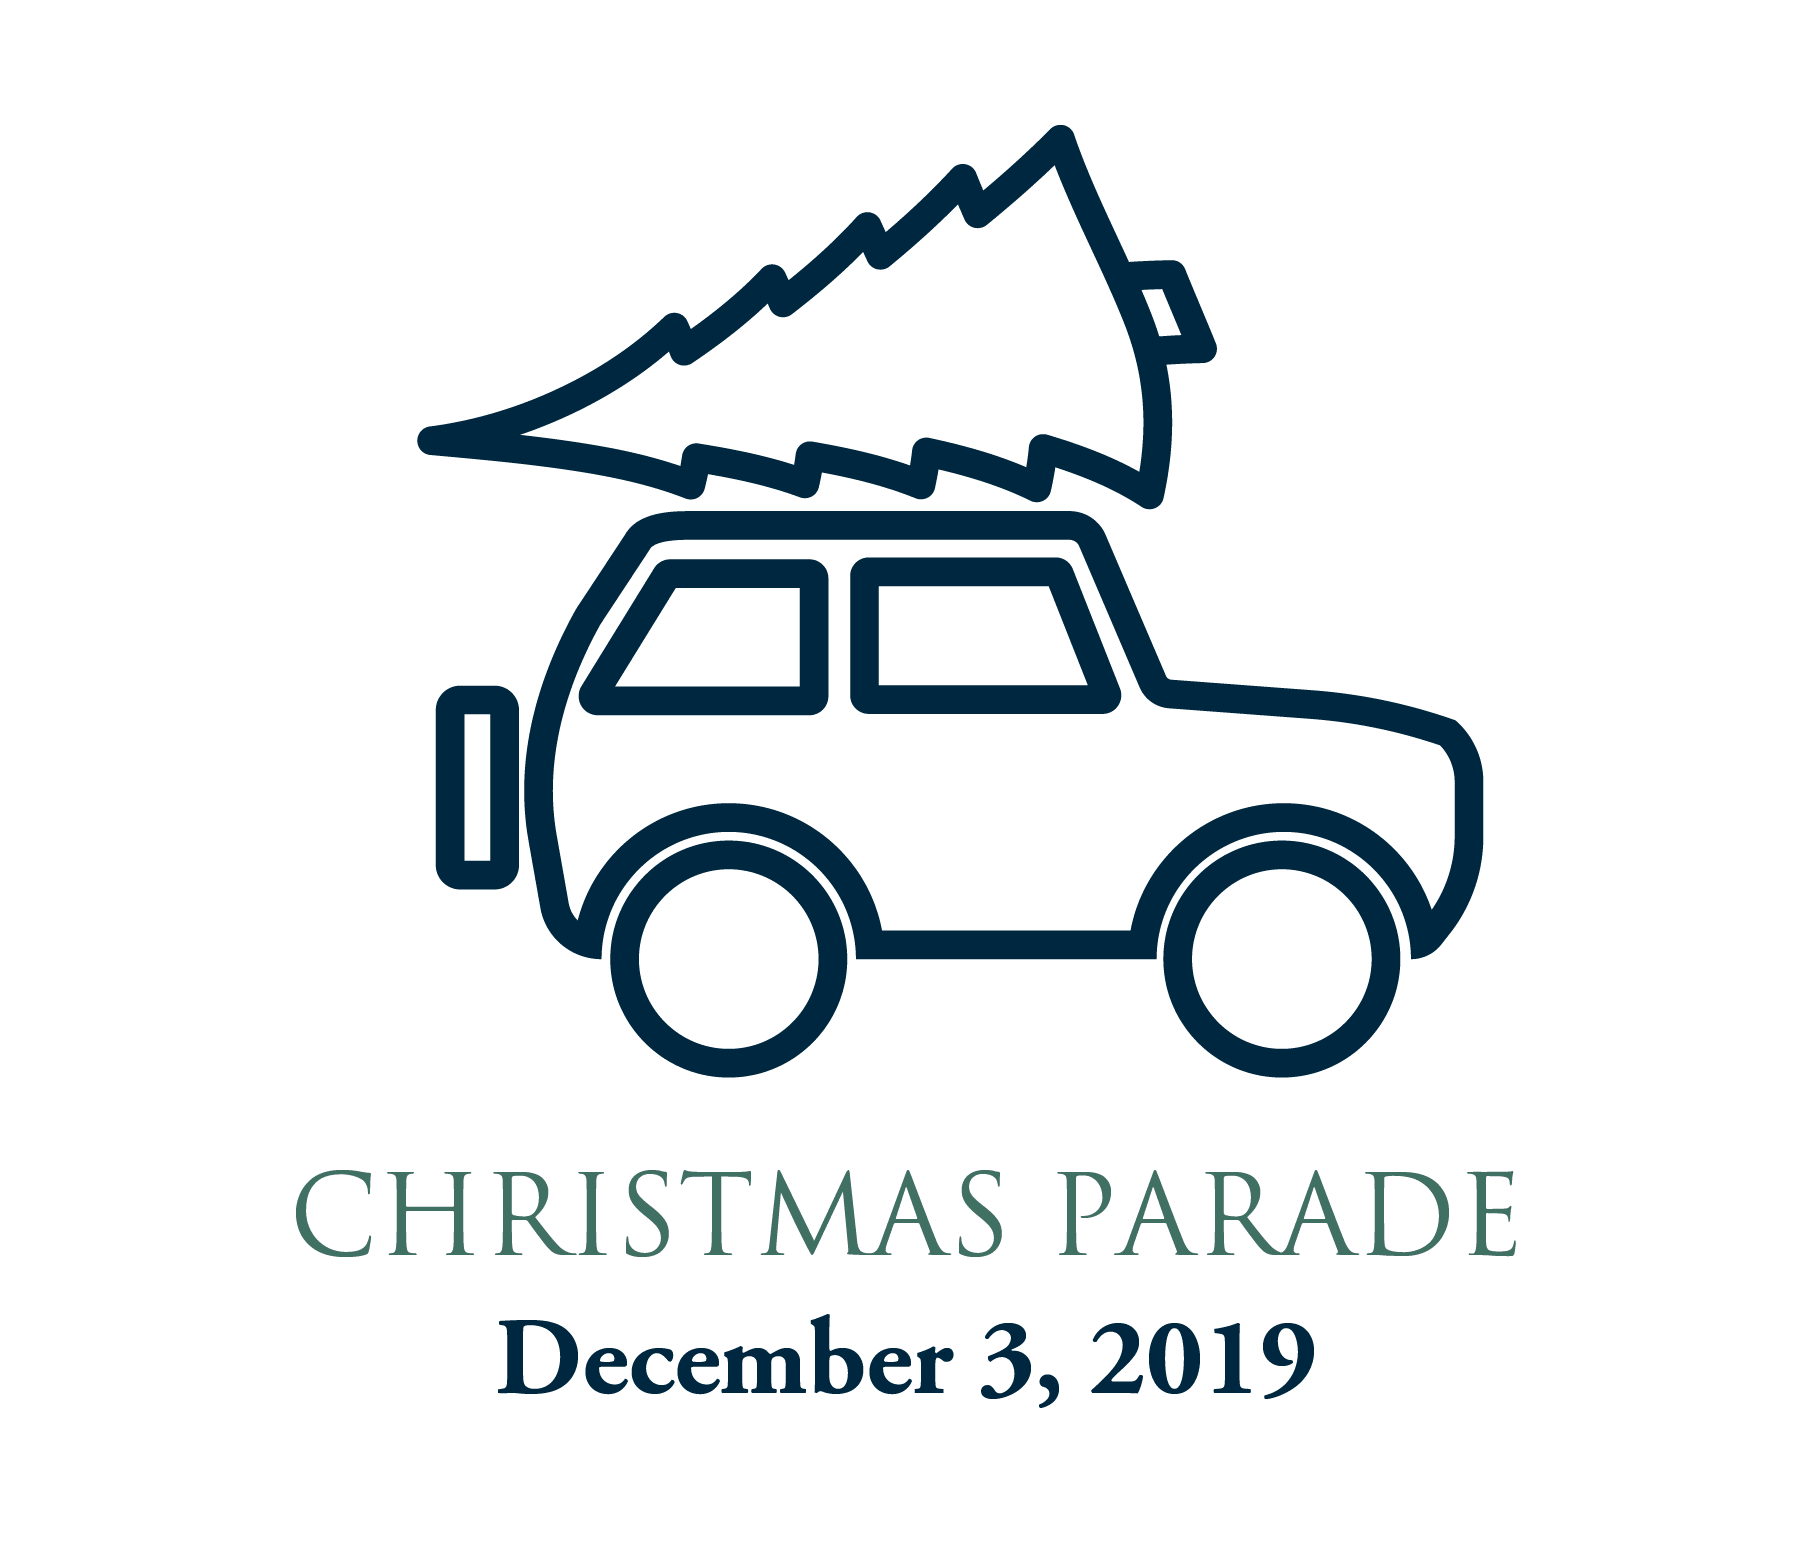 Christmas Parade graphic - car with Christmas tree on top